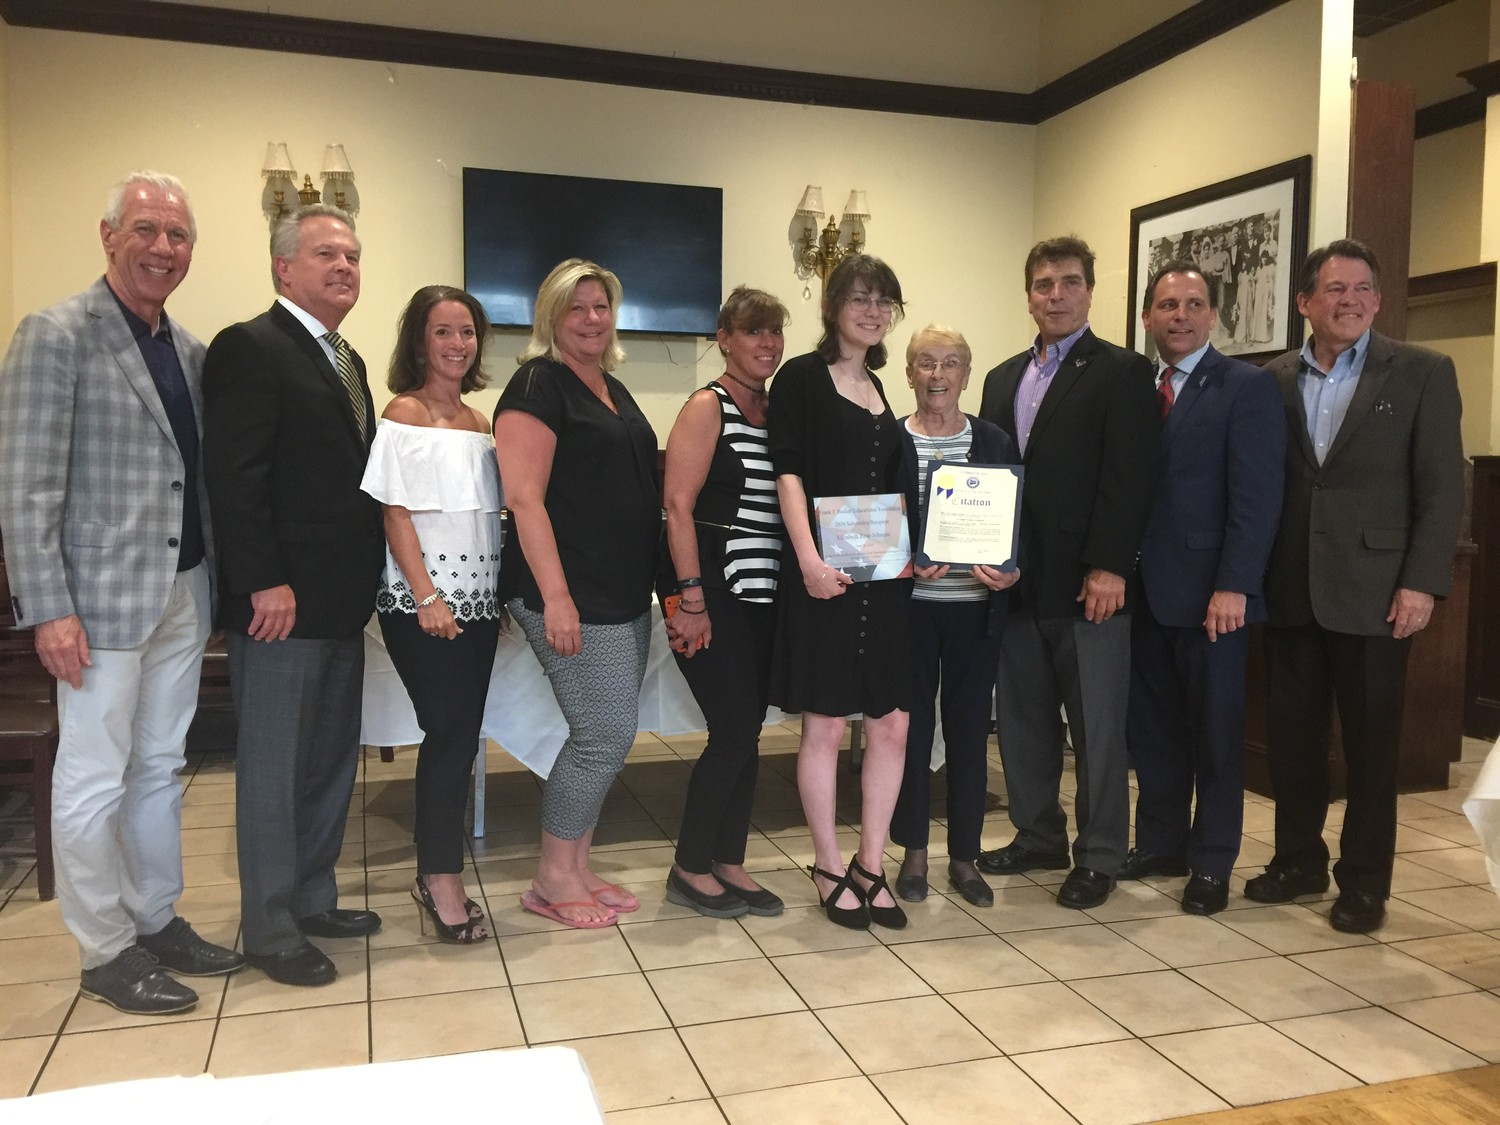 Elizabeth Johnson, fifth from right, was named the recipient of the annual Frank J. Becker Education Foundation Scholarship on June 28. Above, Johnson with Ken Jones, far left, Greg Becker, Karen Becker-Hynes, Lynbrook Village Trustee Ann Marie Reardon, Kathy Simon (Elizabeth's aunt), Lynbrook Mayor Alan Beach, Deputy Mayor Hilary Becker and Fran Becker.